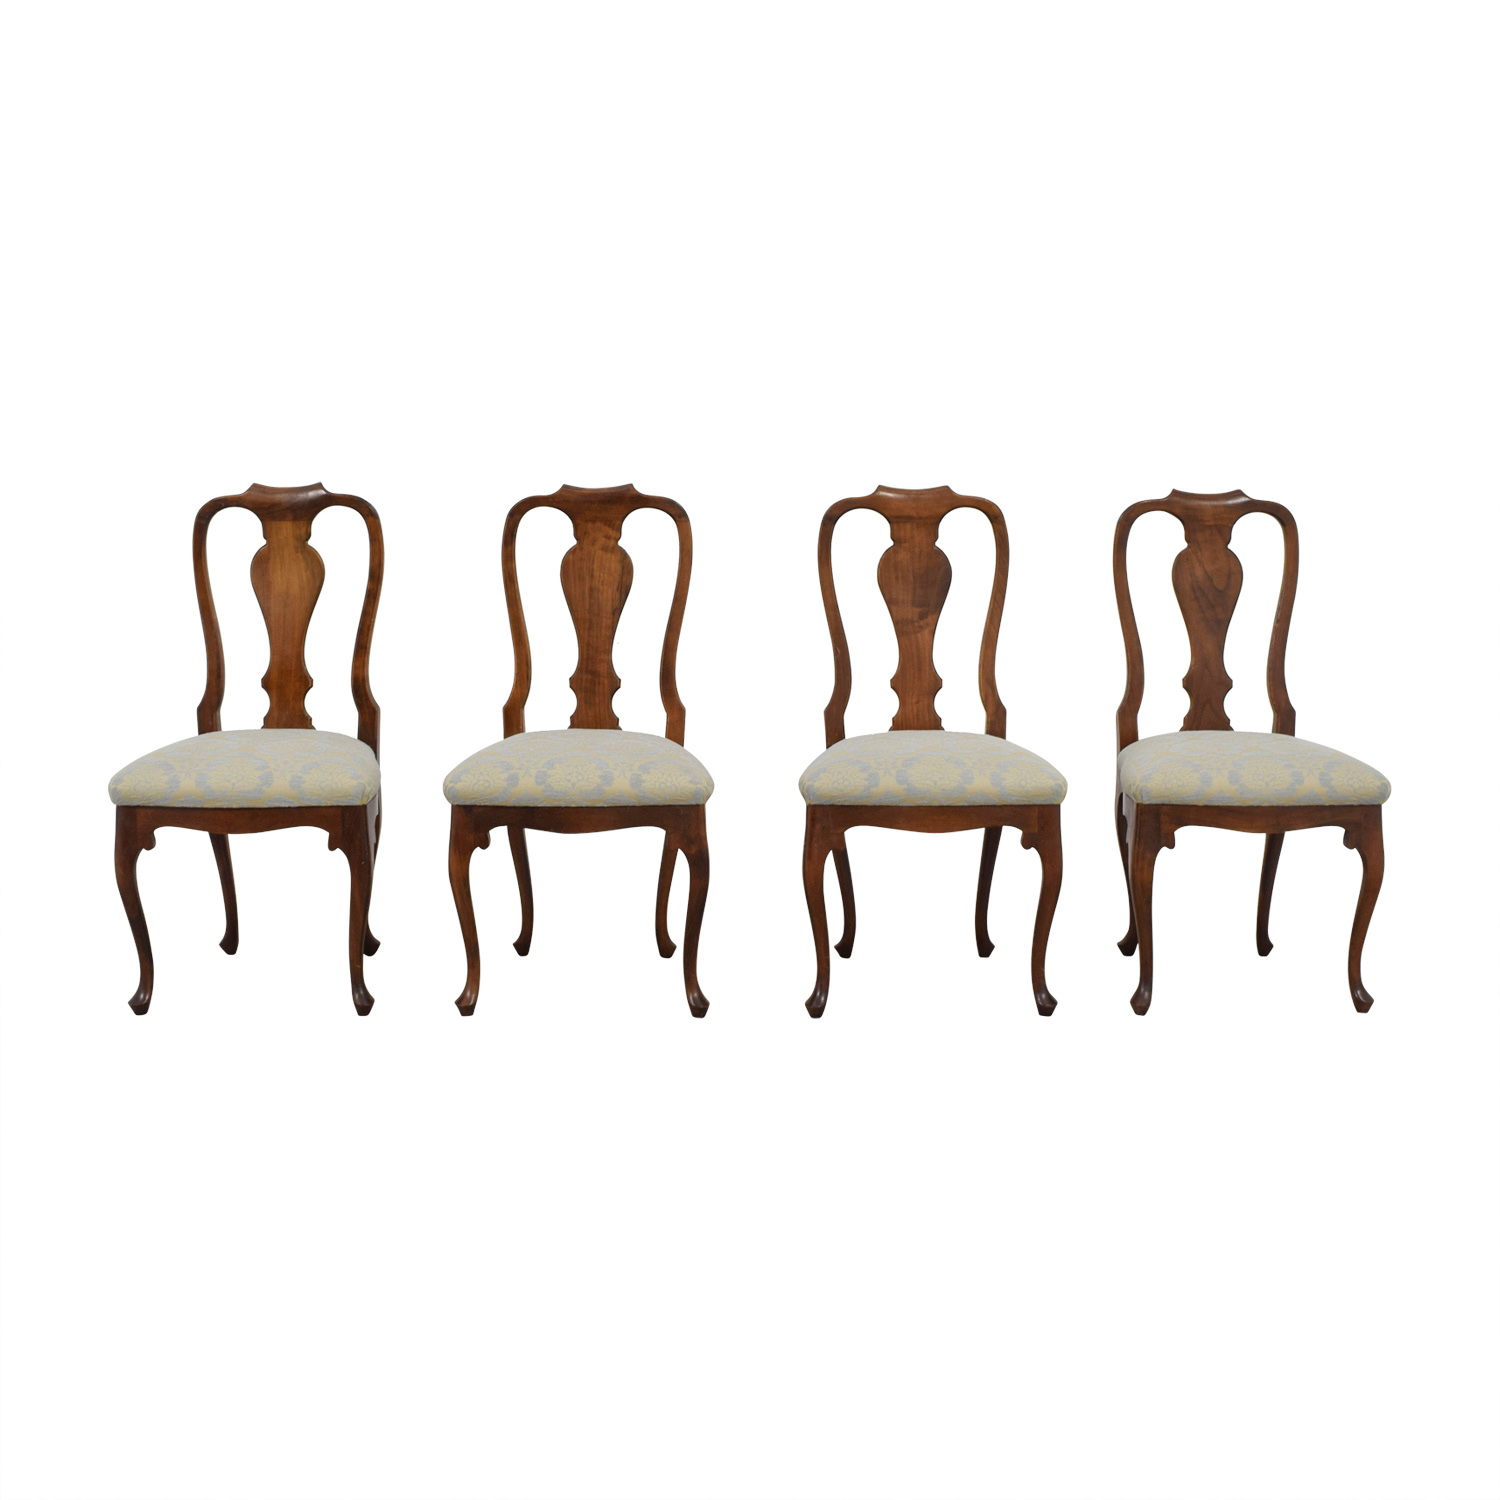 Antique Beige and Grey Hardwood Dining Chairs coupon